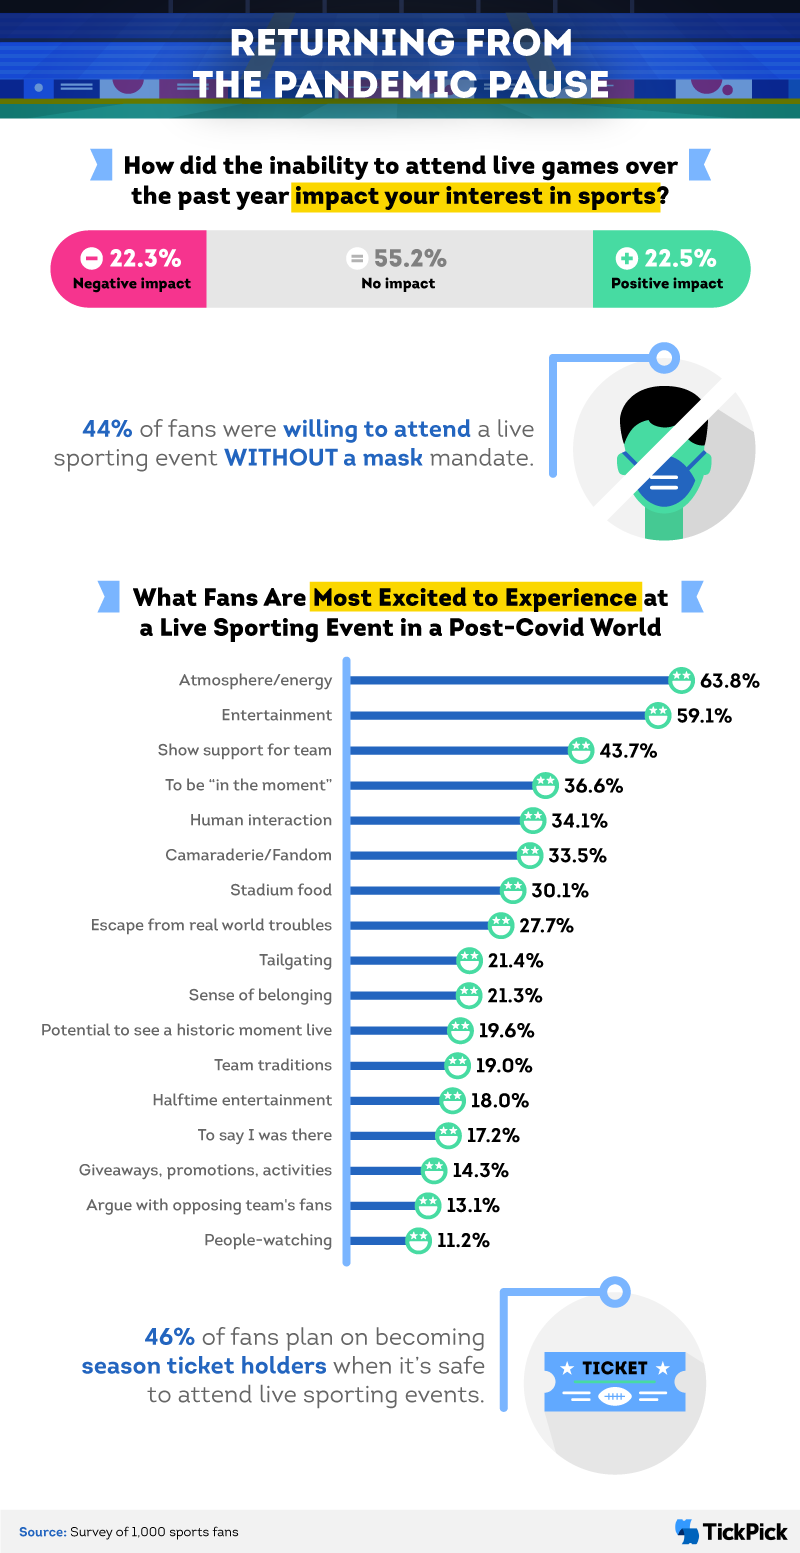 Are fans ready to attend live sporting events?